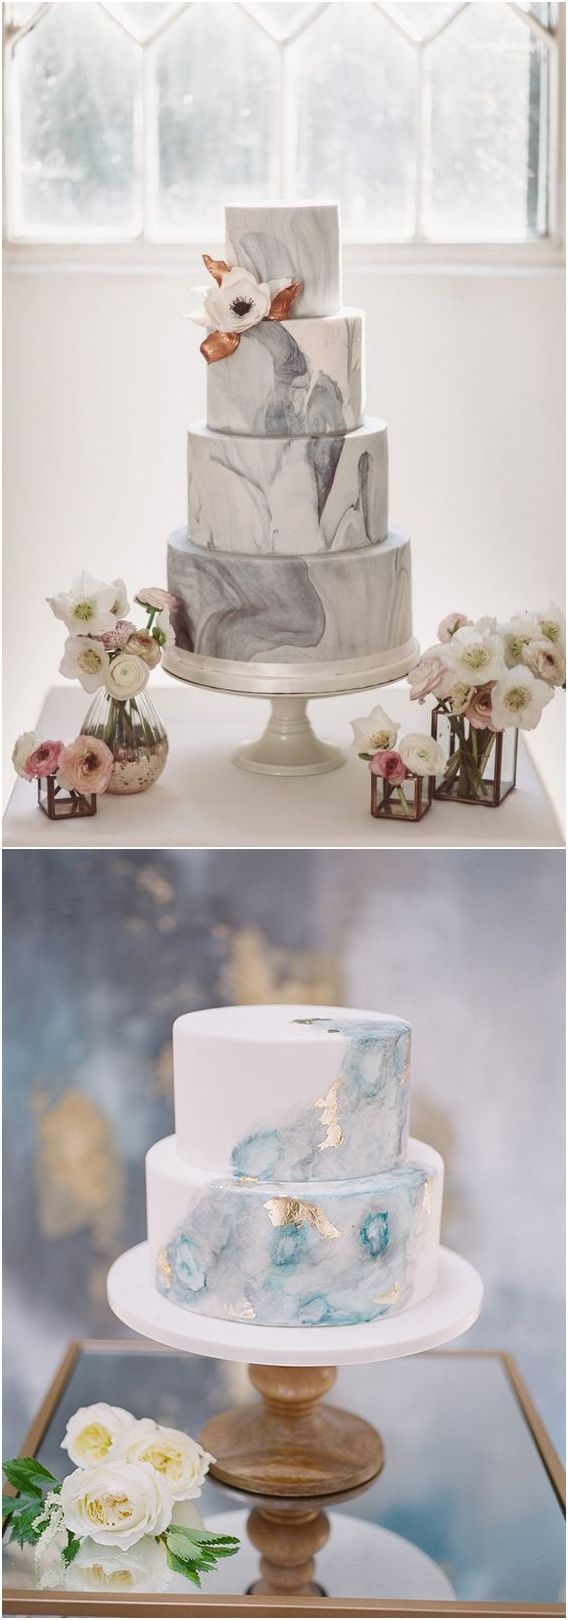 Marble wedding cake ideas #weddings #weddingcakes #cakes ❤️ http://www.deerpearlflowers.com/wedding-cake-trends/